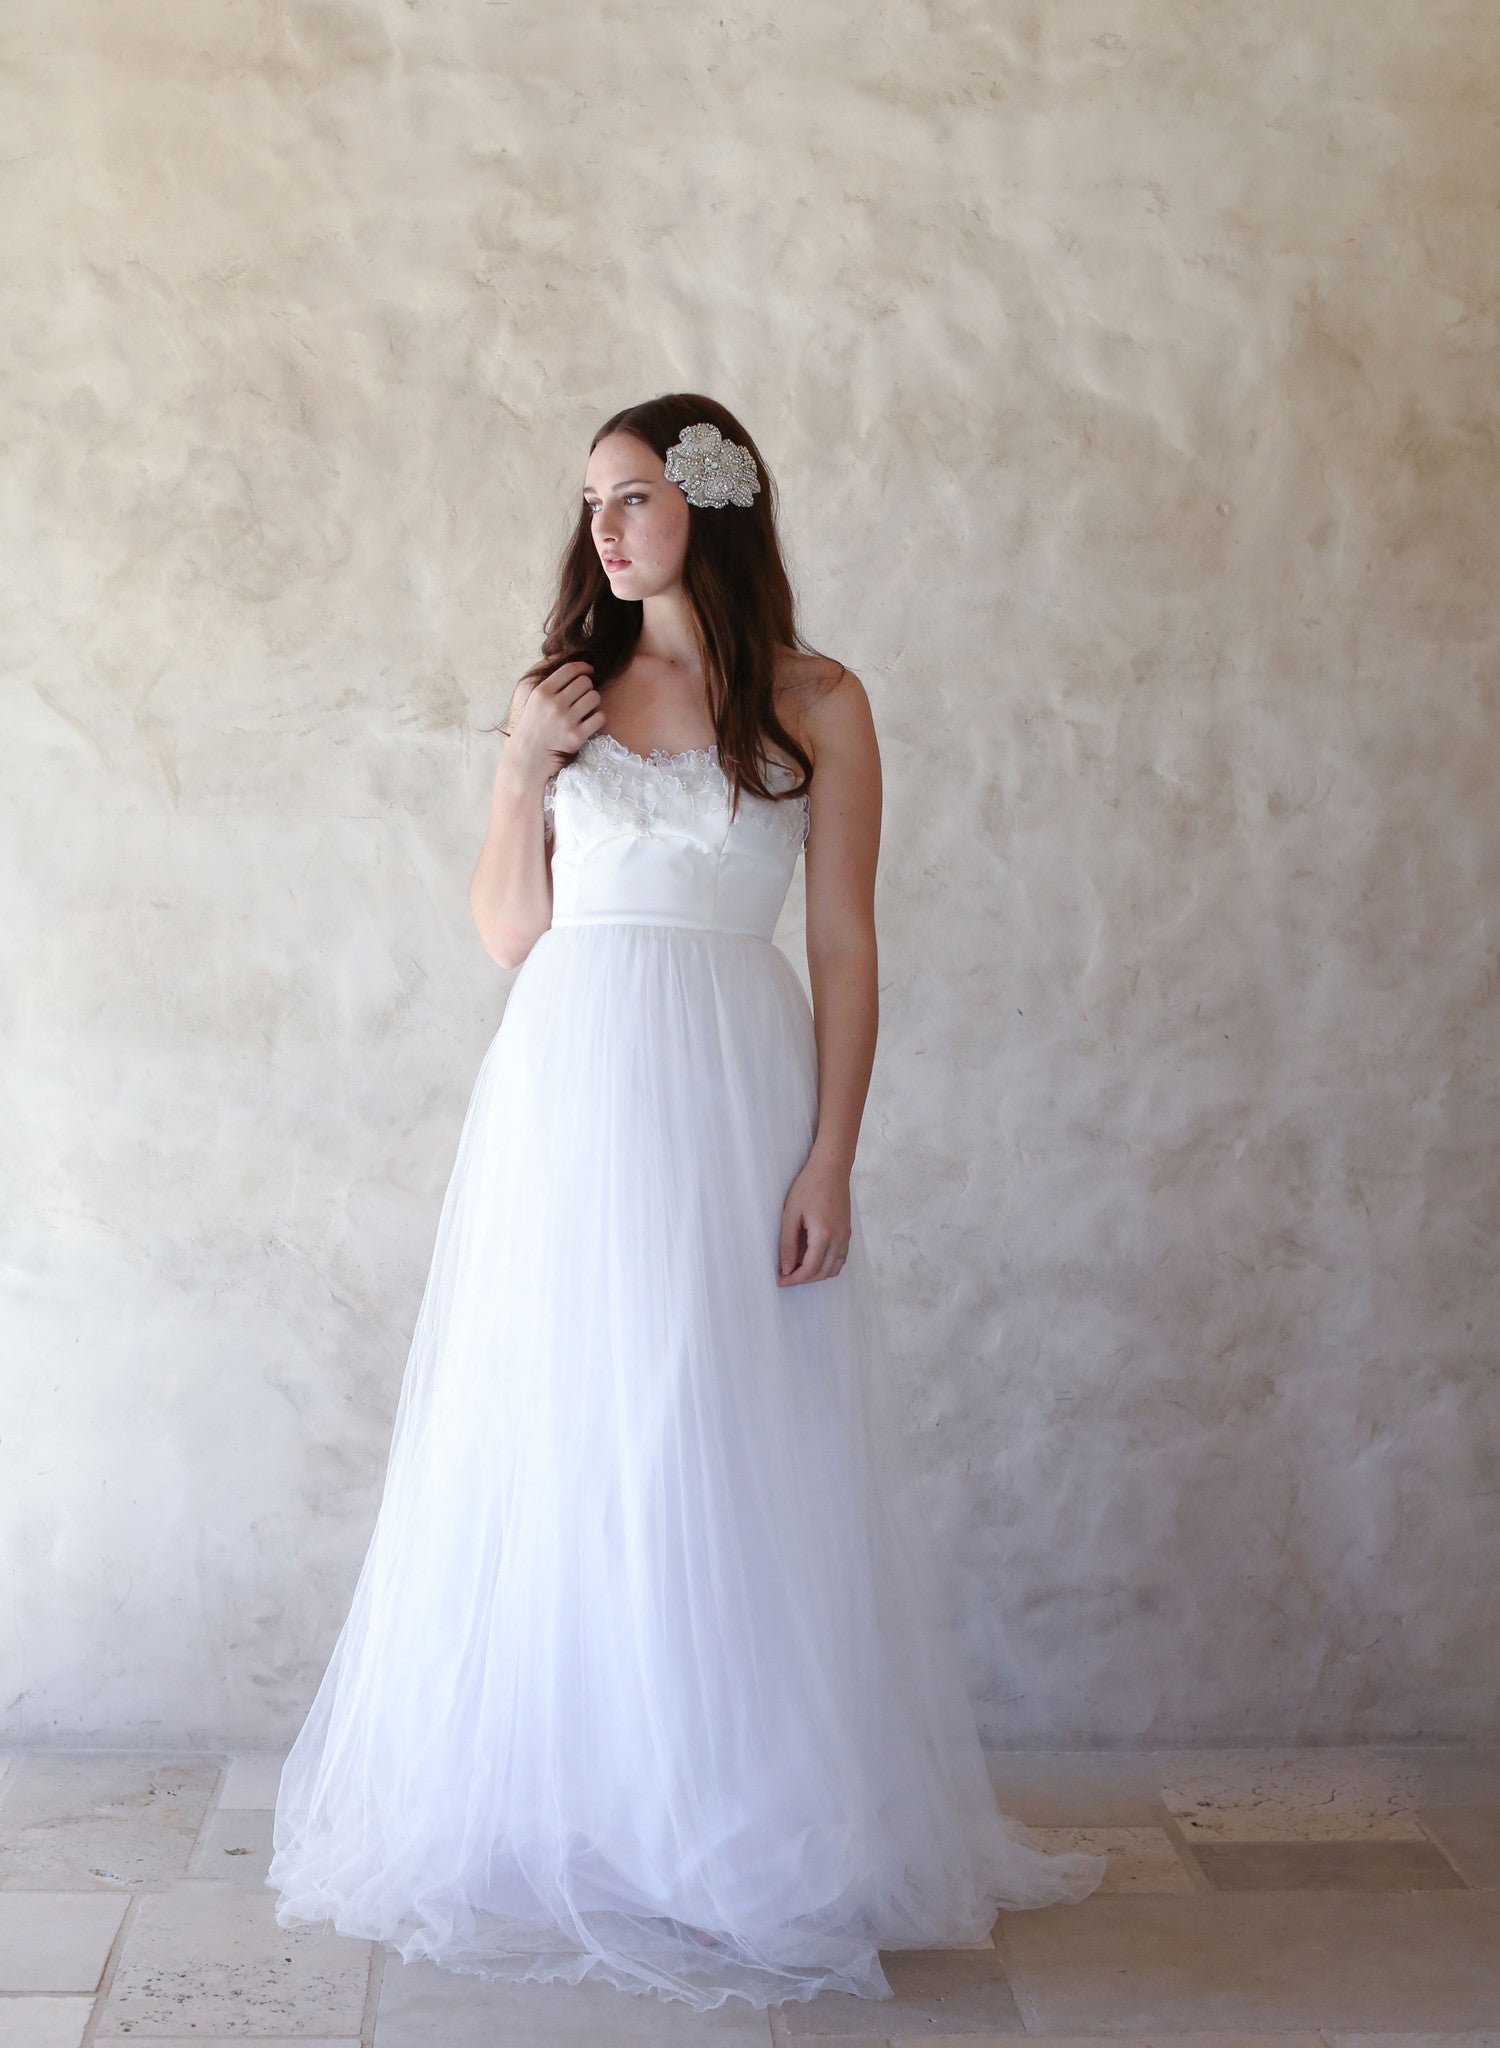 Aspen - Full skirt, strapless gown with lace - Style #TH013